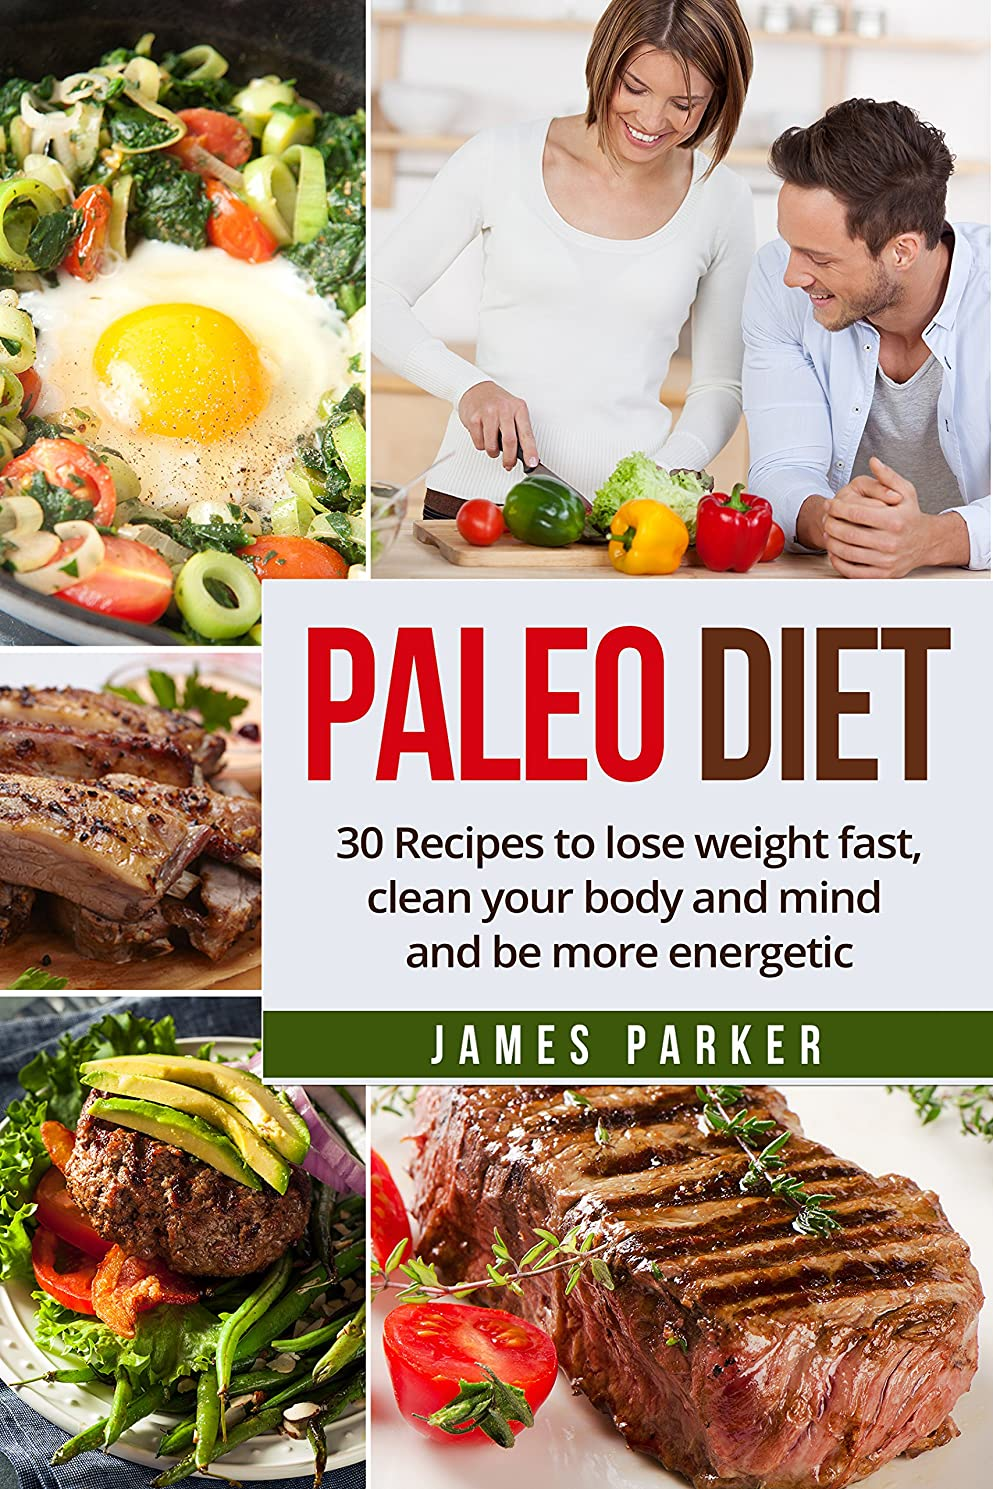 Paleo Diet:30 Recipes to lose weight fast, clean your body and mind and be more energetic (Diet recipes, Weight loss, Paleo Diet, Paleo cookbook, lose ... Paleo diet ultimate guide) (English Edition)